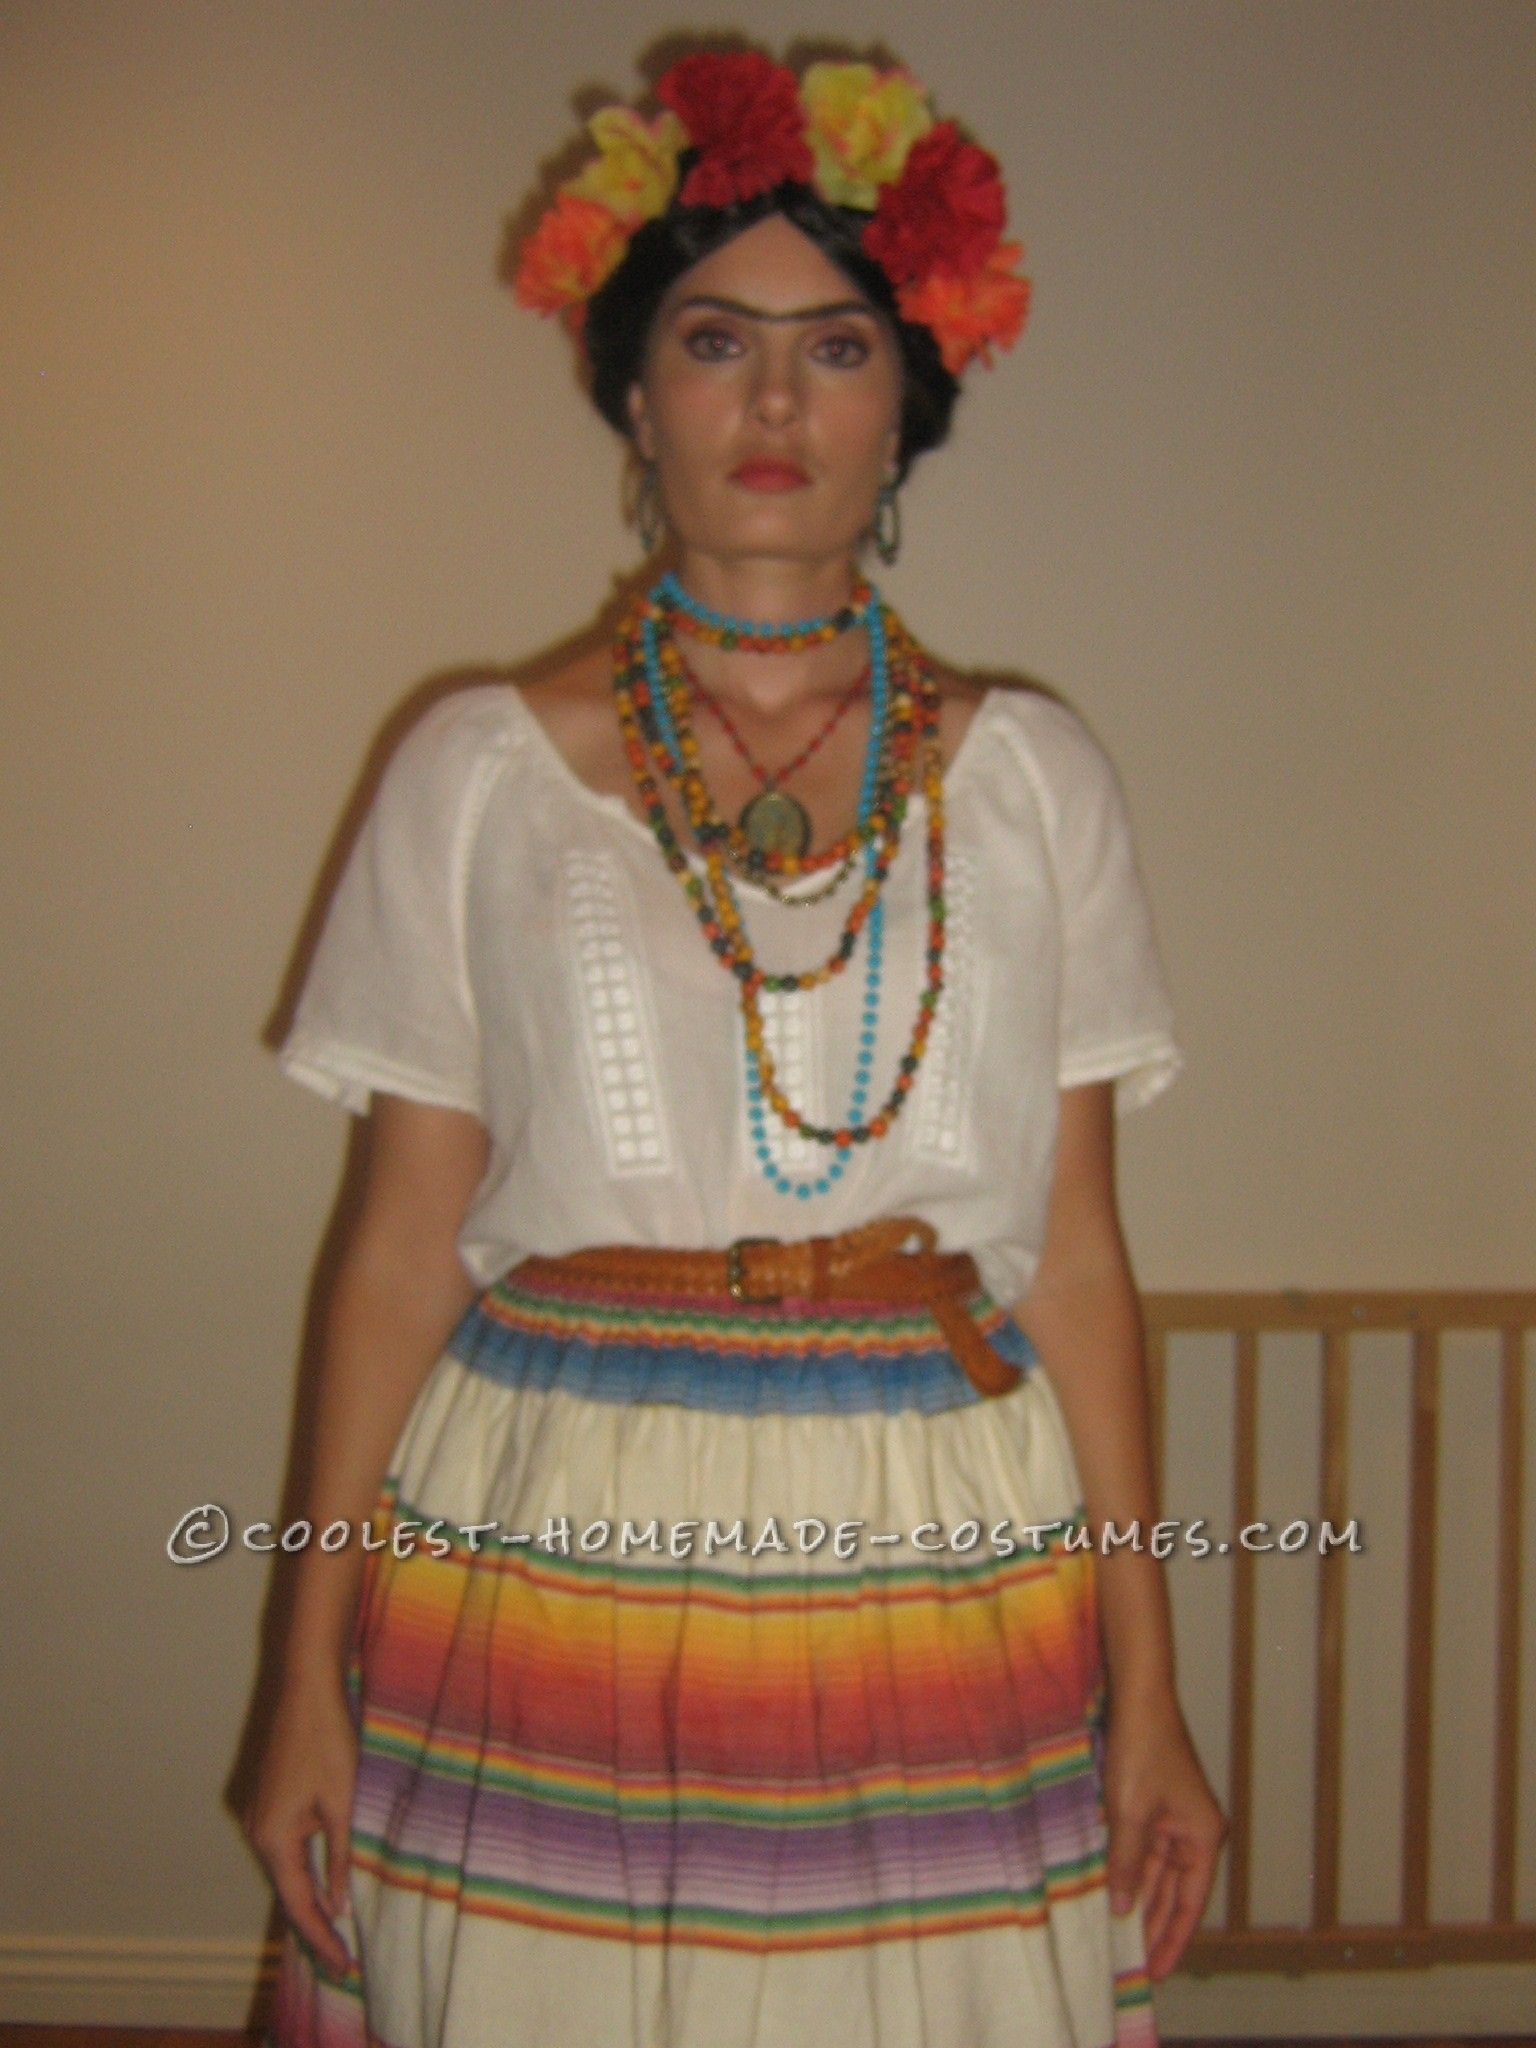 Easy Homemade Frida Kahlo Halloween Costume | Frida kahlo ...